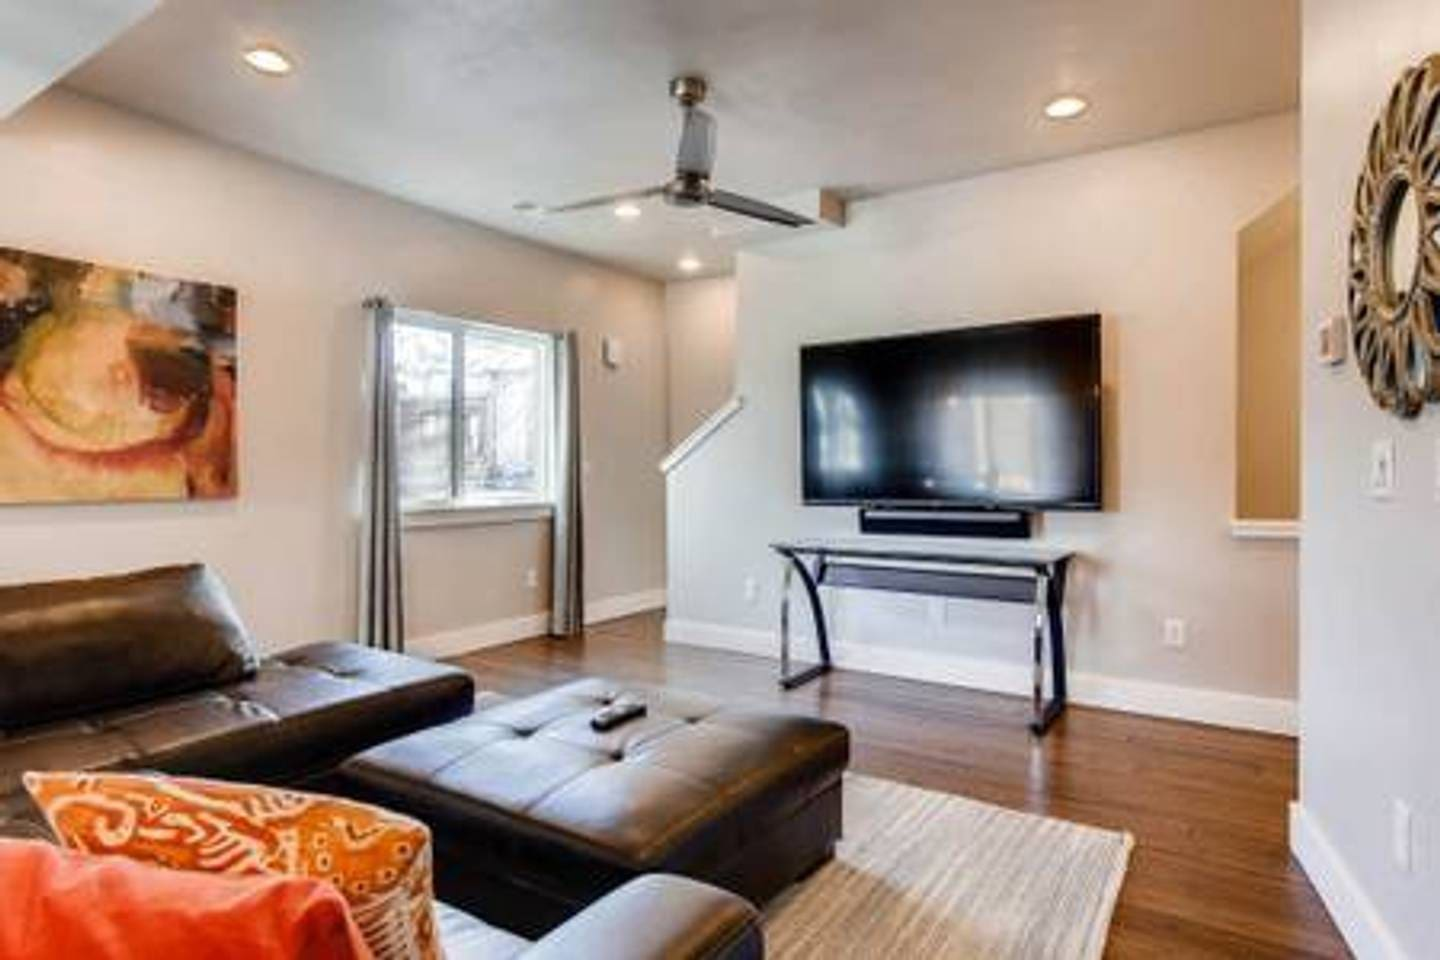 The spacious living room is ideal for entertaining